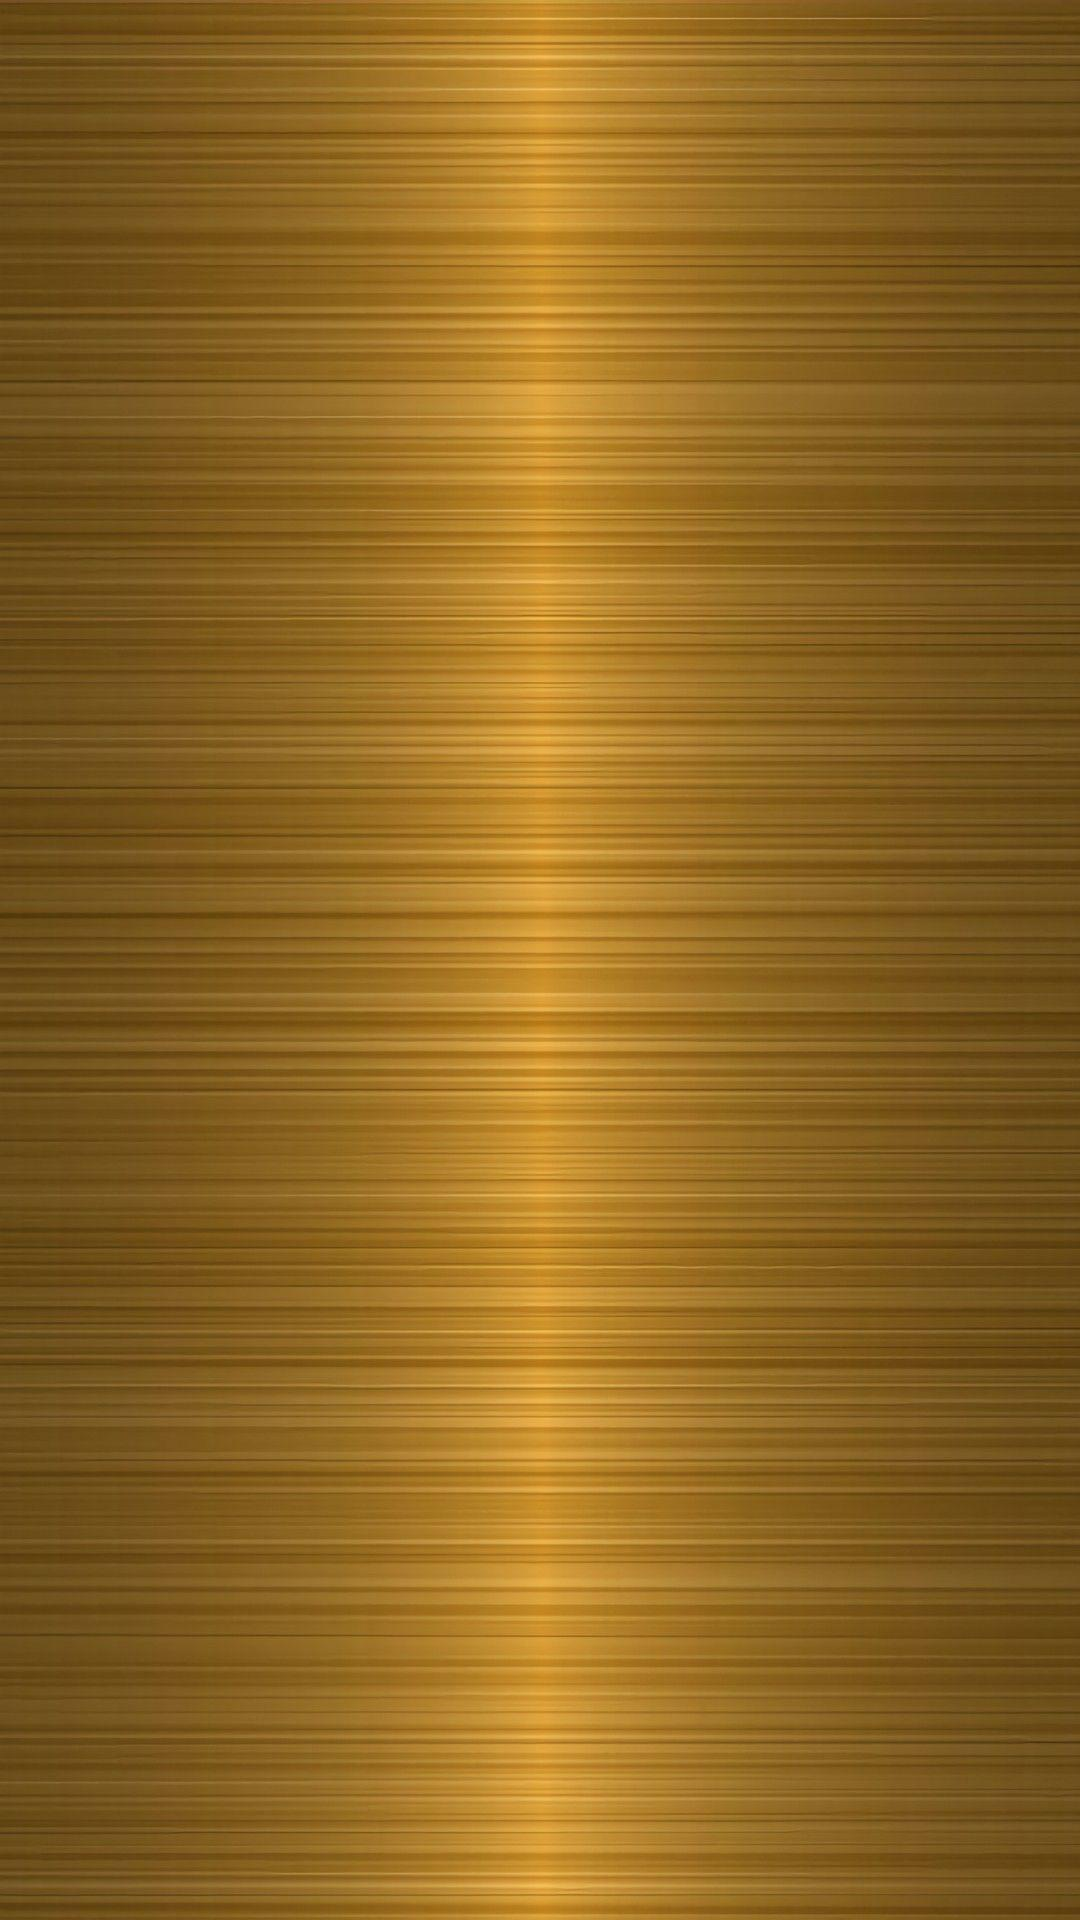 gold texture wallpapers wallpaper cave